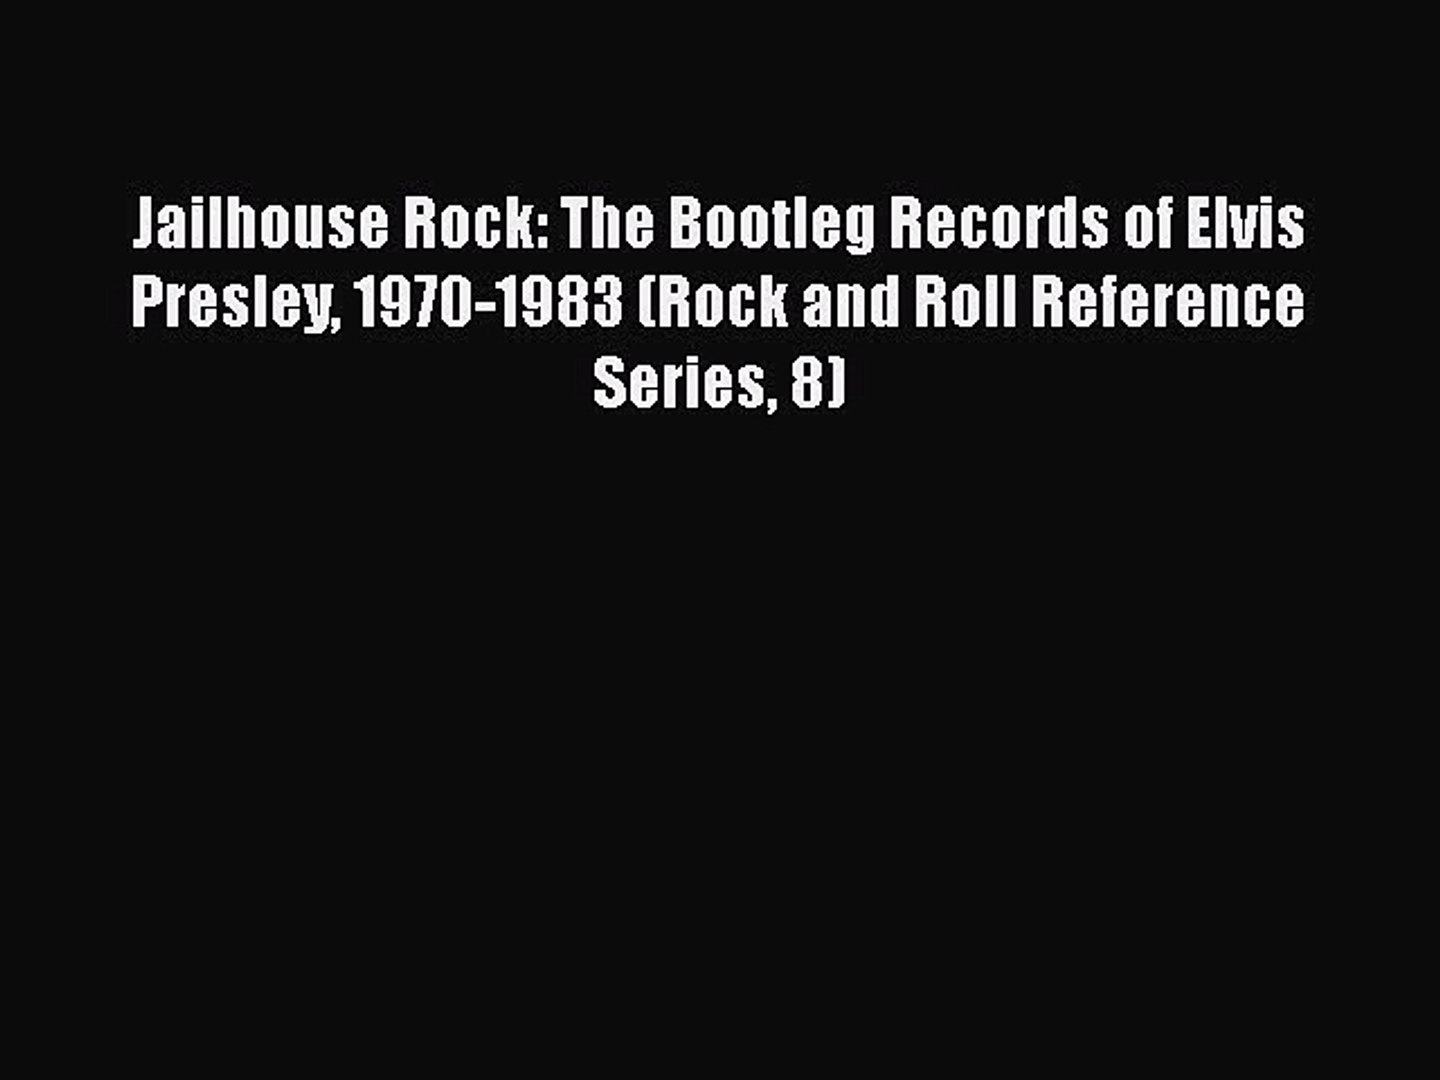 [Read book] Jailhouse Rock: The Bootleg Records of Elvis Presley 1970-1983 (Rock and Roll Reference